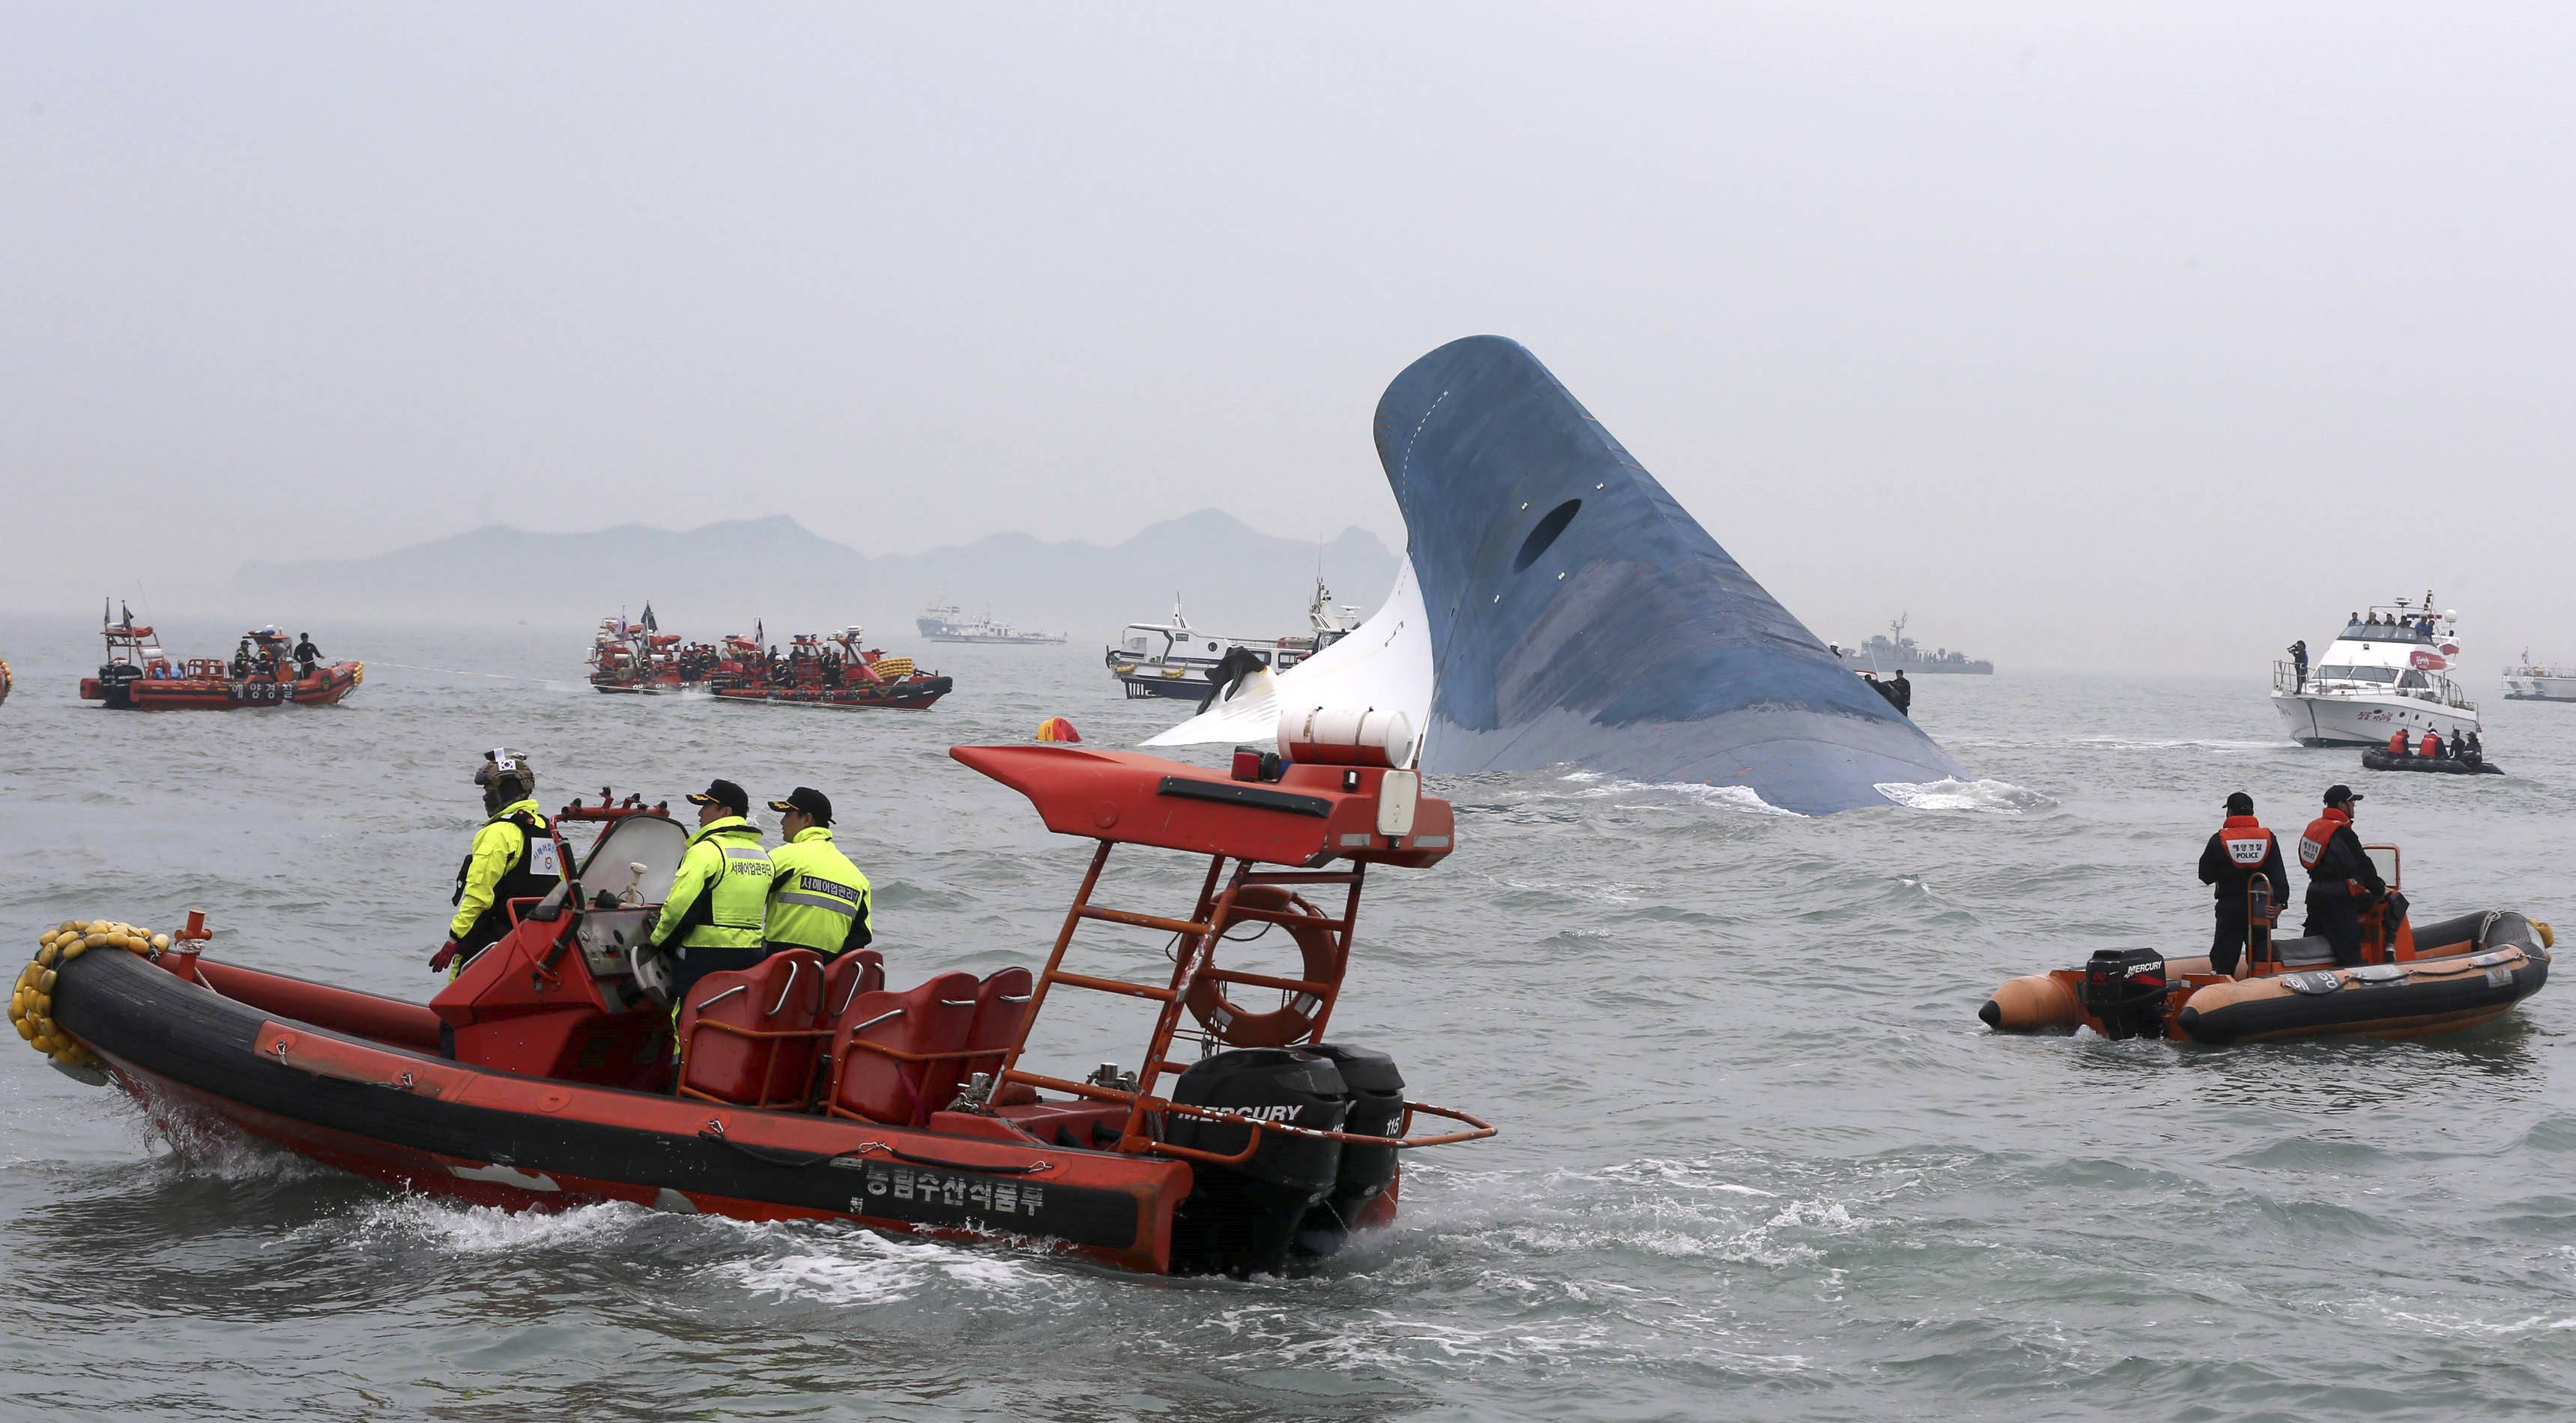 South Korean coast guard officers and rescue team members try to rescue passengers from the ferry Sewol in the water off the southern coast near Jindo, south of Seoul, Wednesday, April 16, 2014. Dozens of boats, helicopters and divers scrambled Wednesday to rescue more than 470 people, including 325 high school students on a school trip, after a ferry sank off South Korea's southern coast.